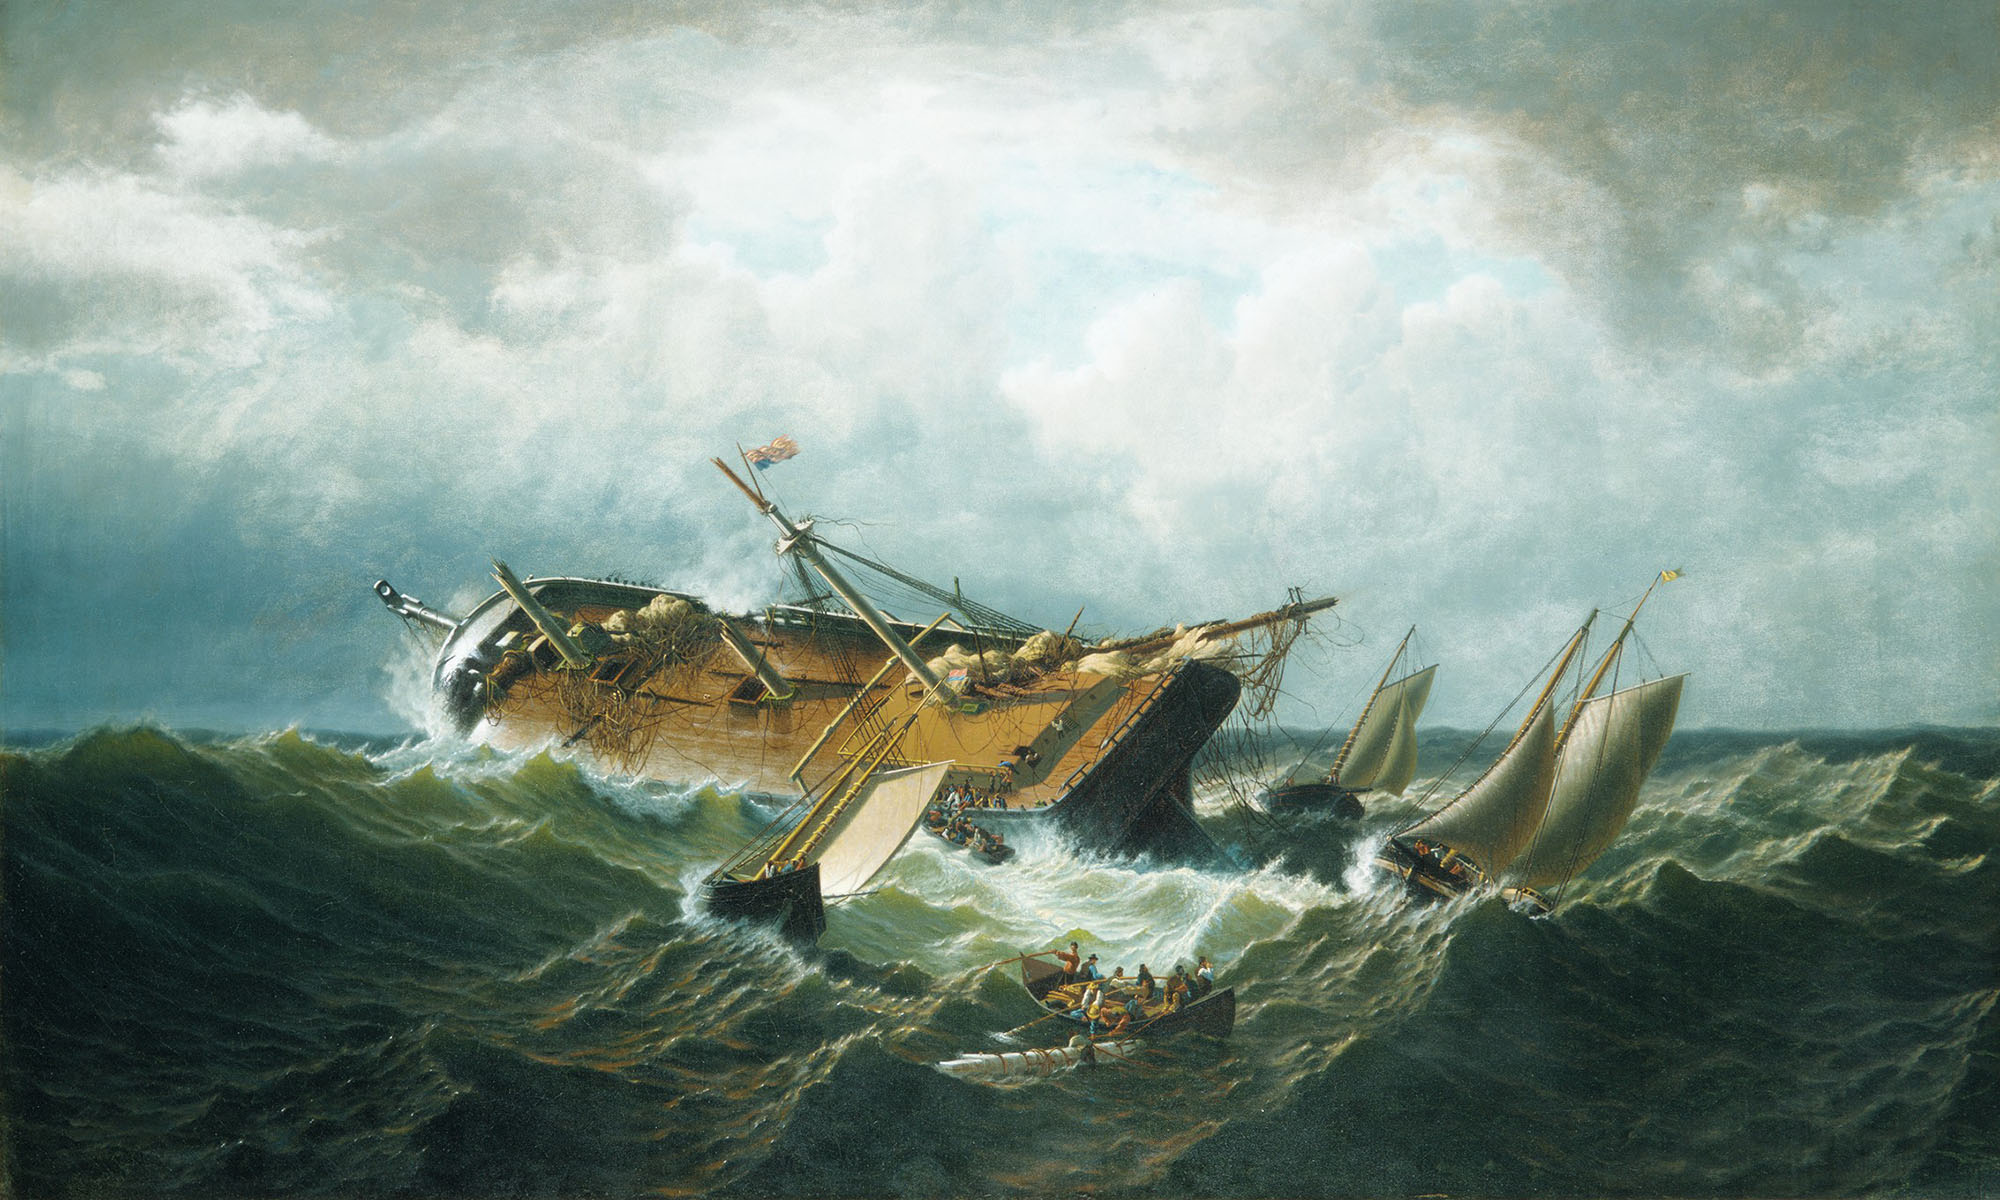 Shipwreck off Nantucket